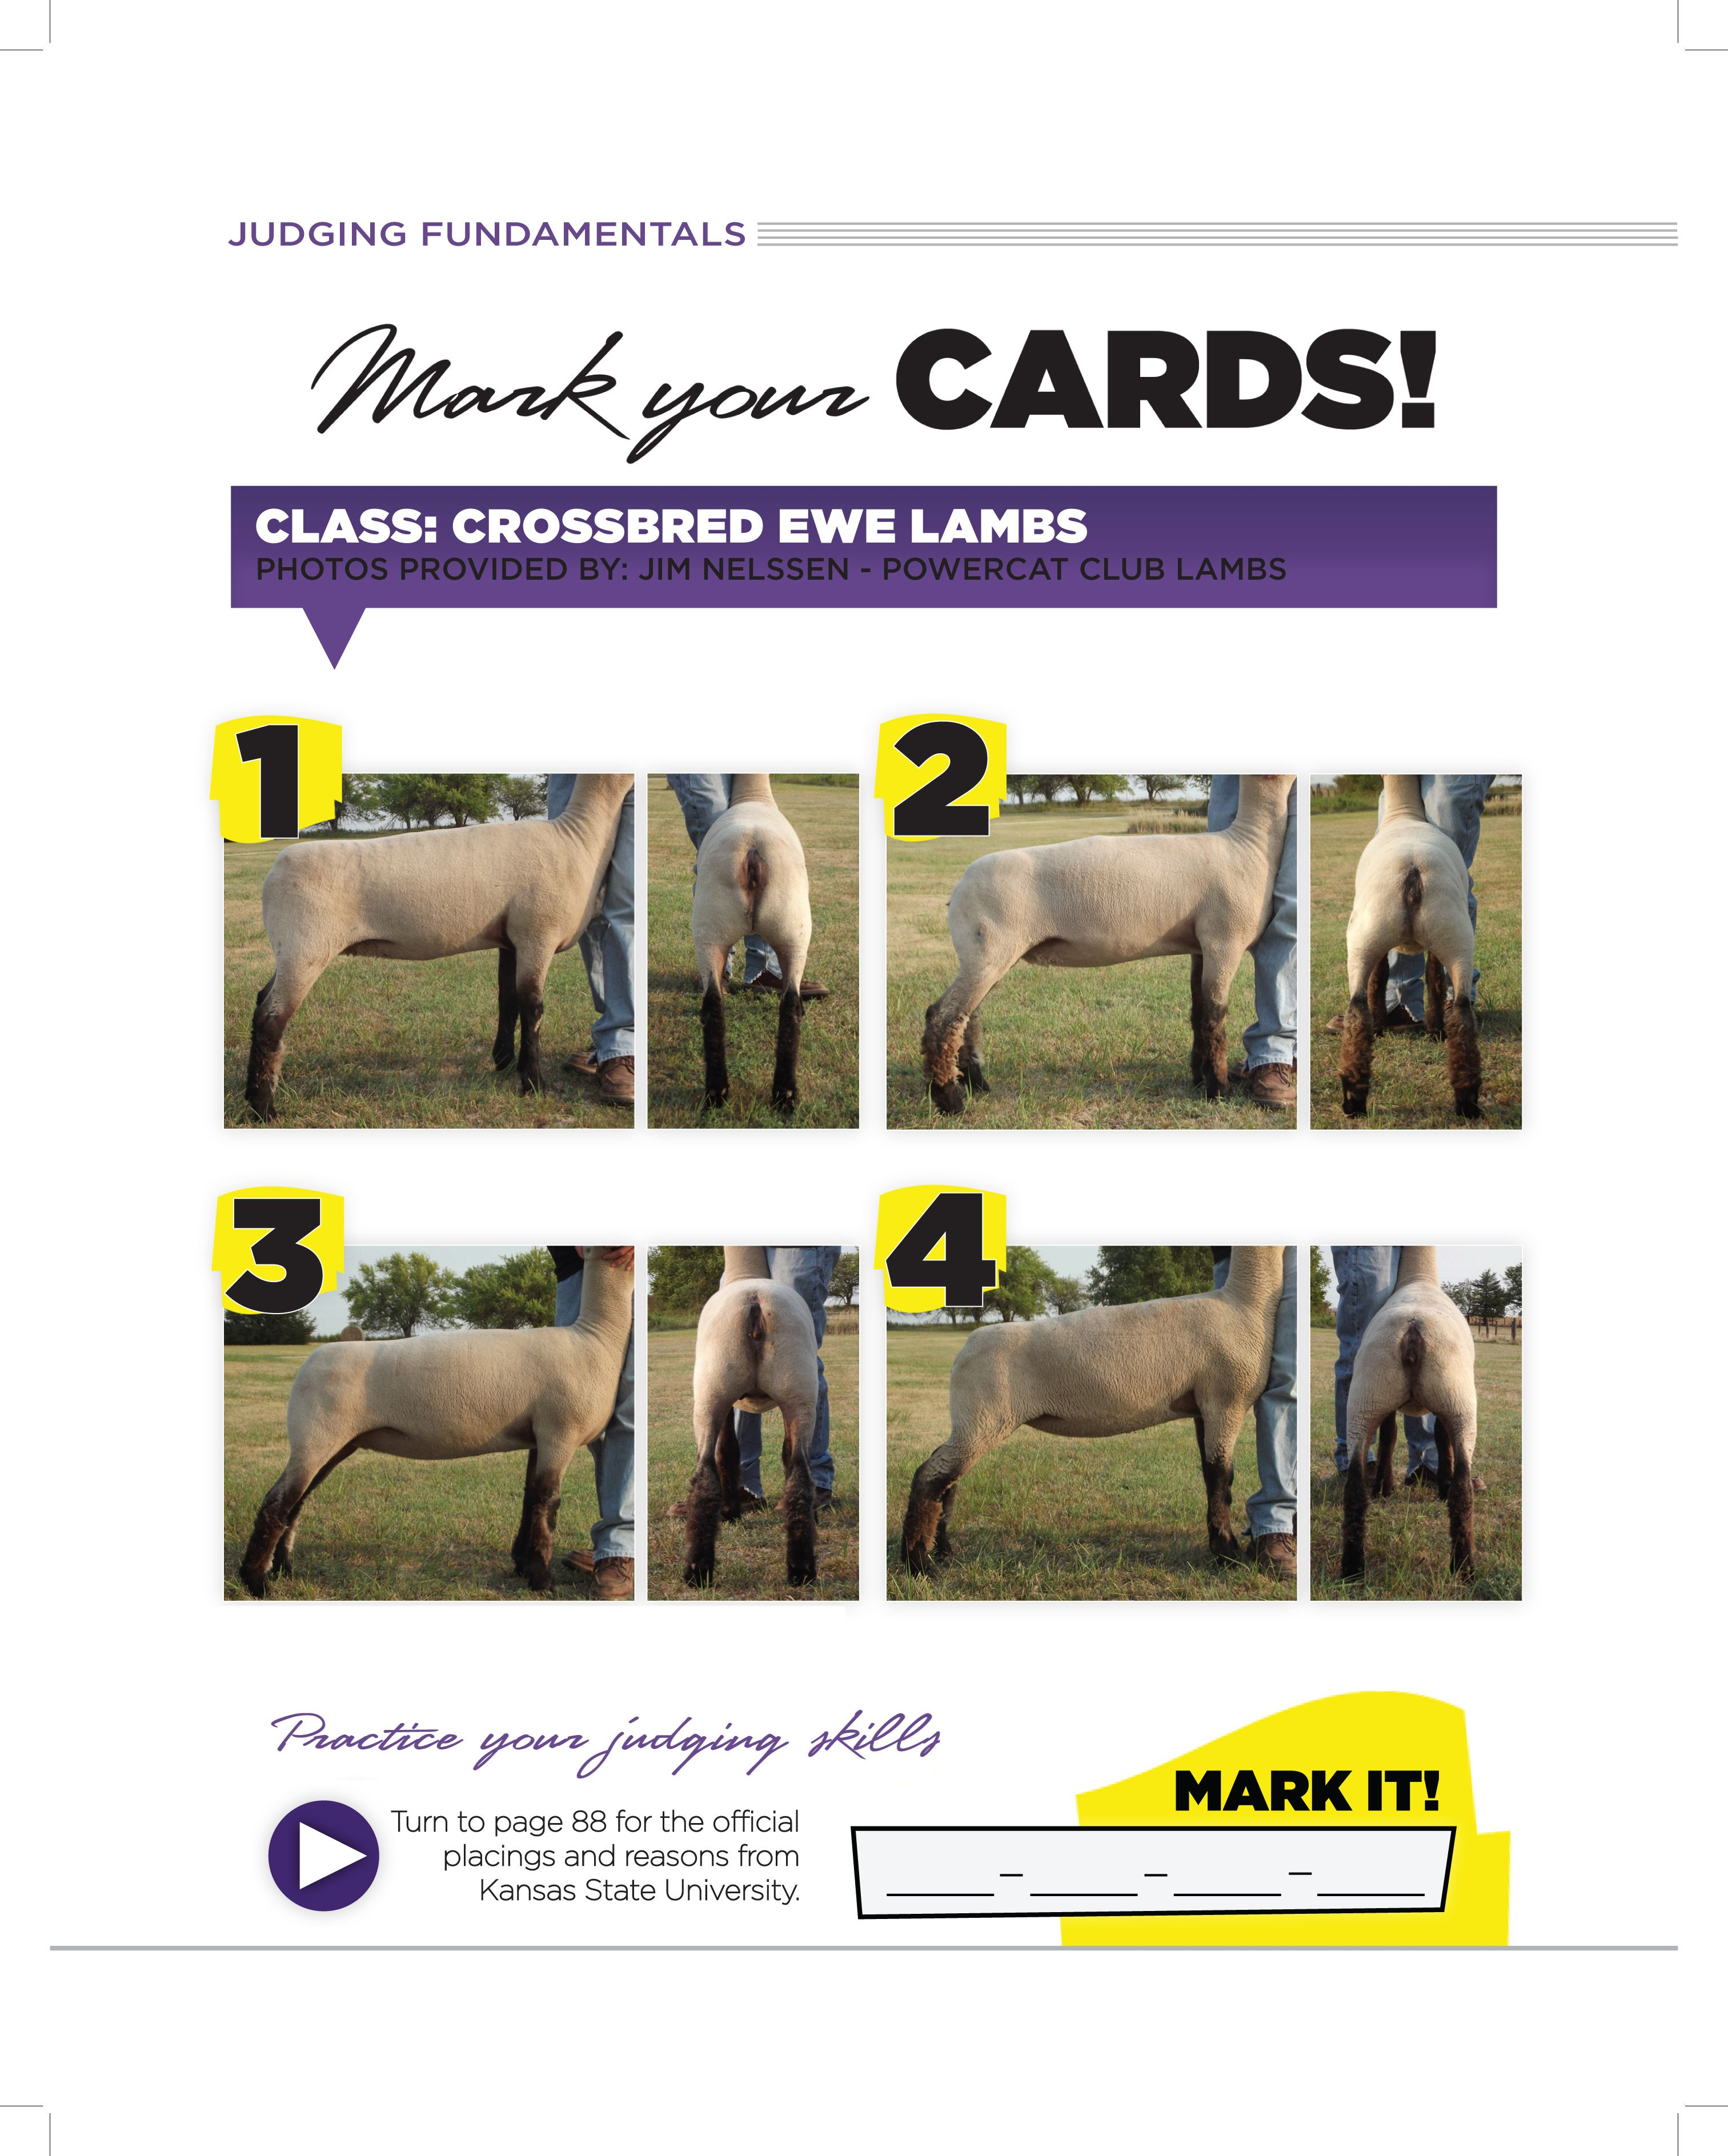 Crossbred Ewe Lambs From K State Livestock Judging Camp